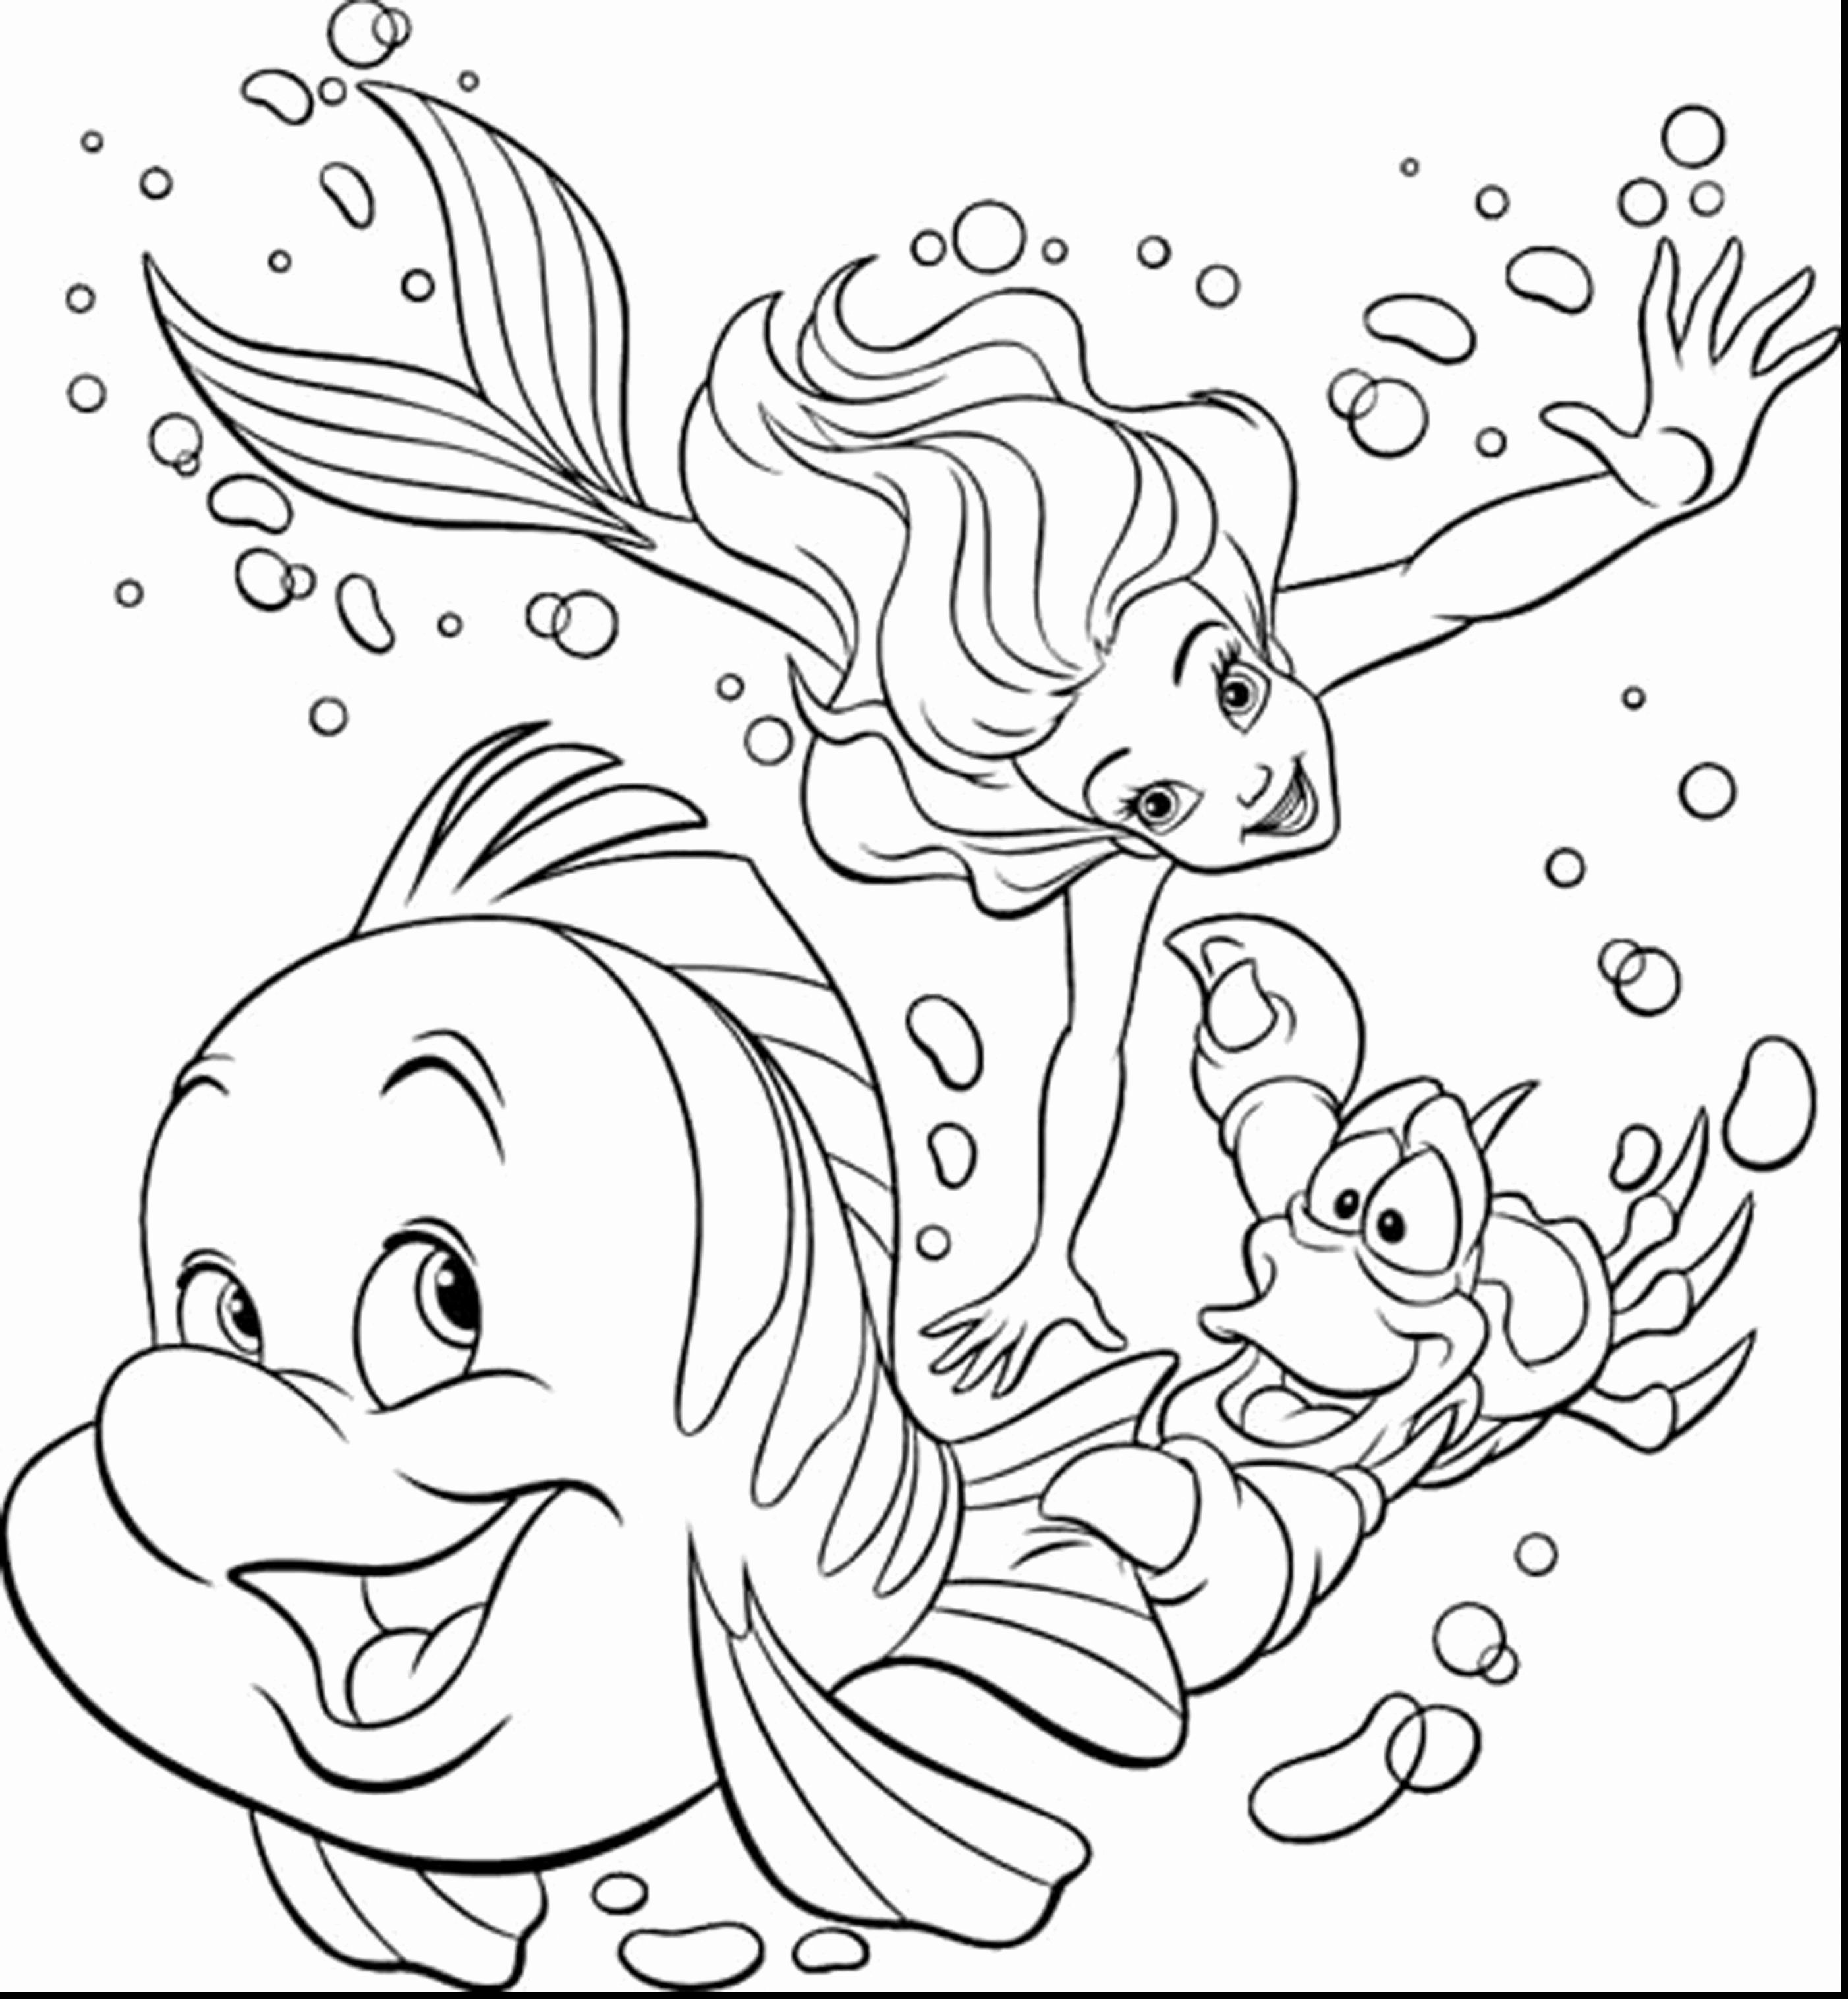 Pin Op Example Coloring Page For Toddlers